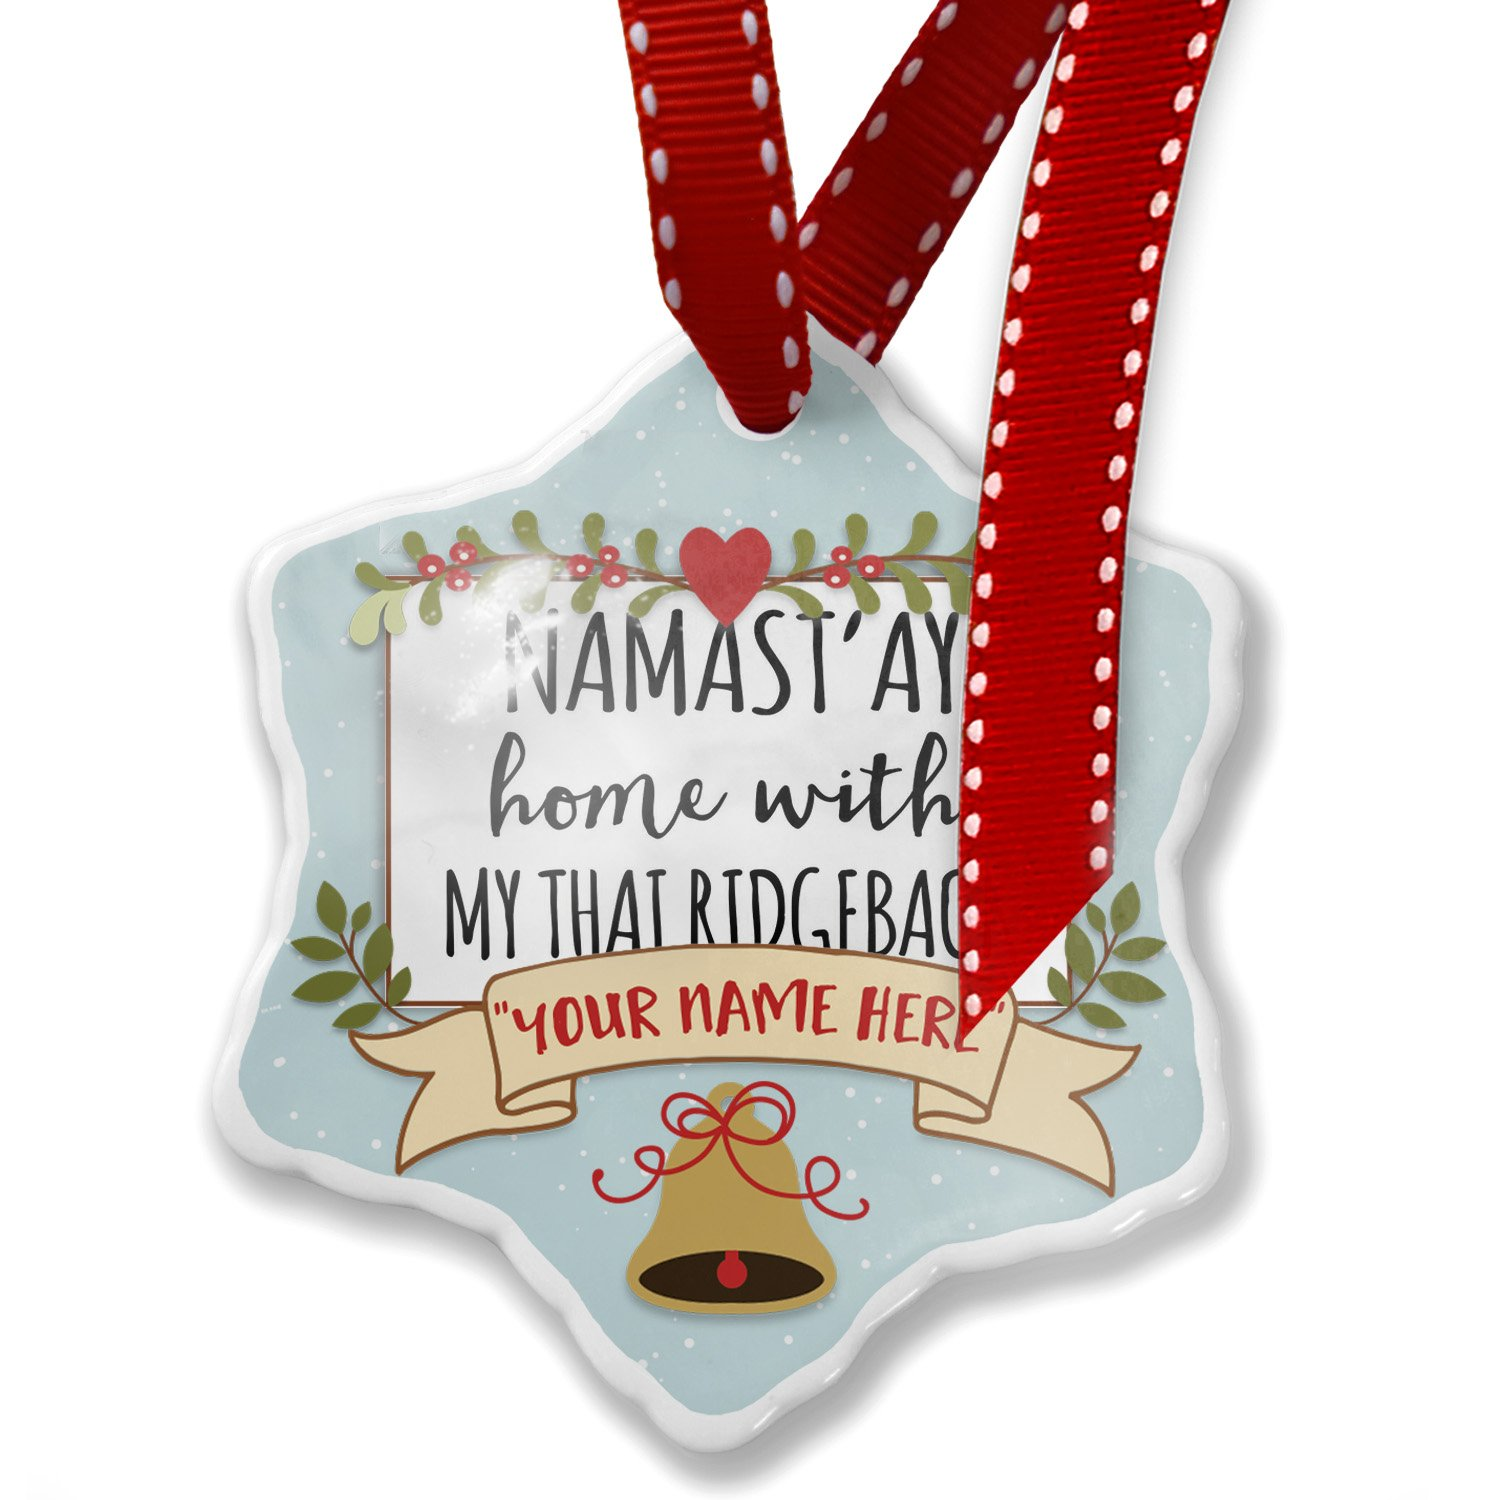 Add Your Own Custom Name, Namast'ay Home With My Thai Ridgeback Simple Sayings Christmas Ornament NEONBLOND by NEONBLOND